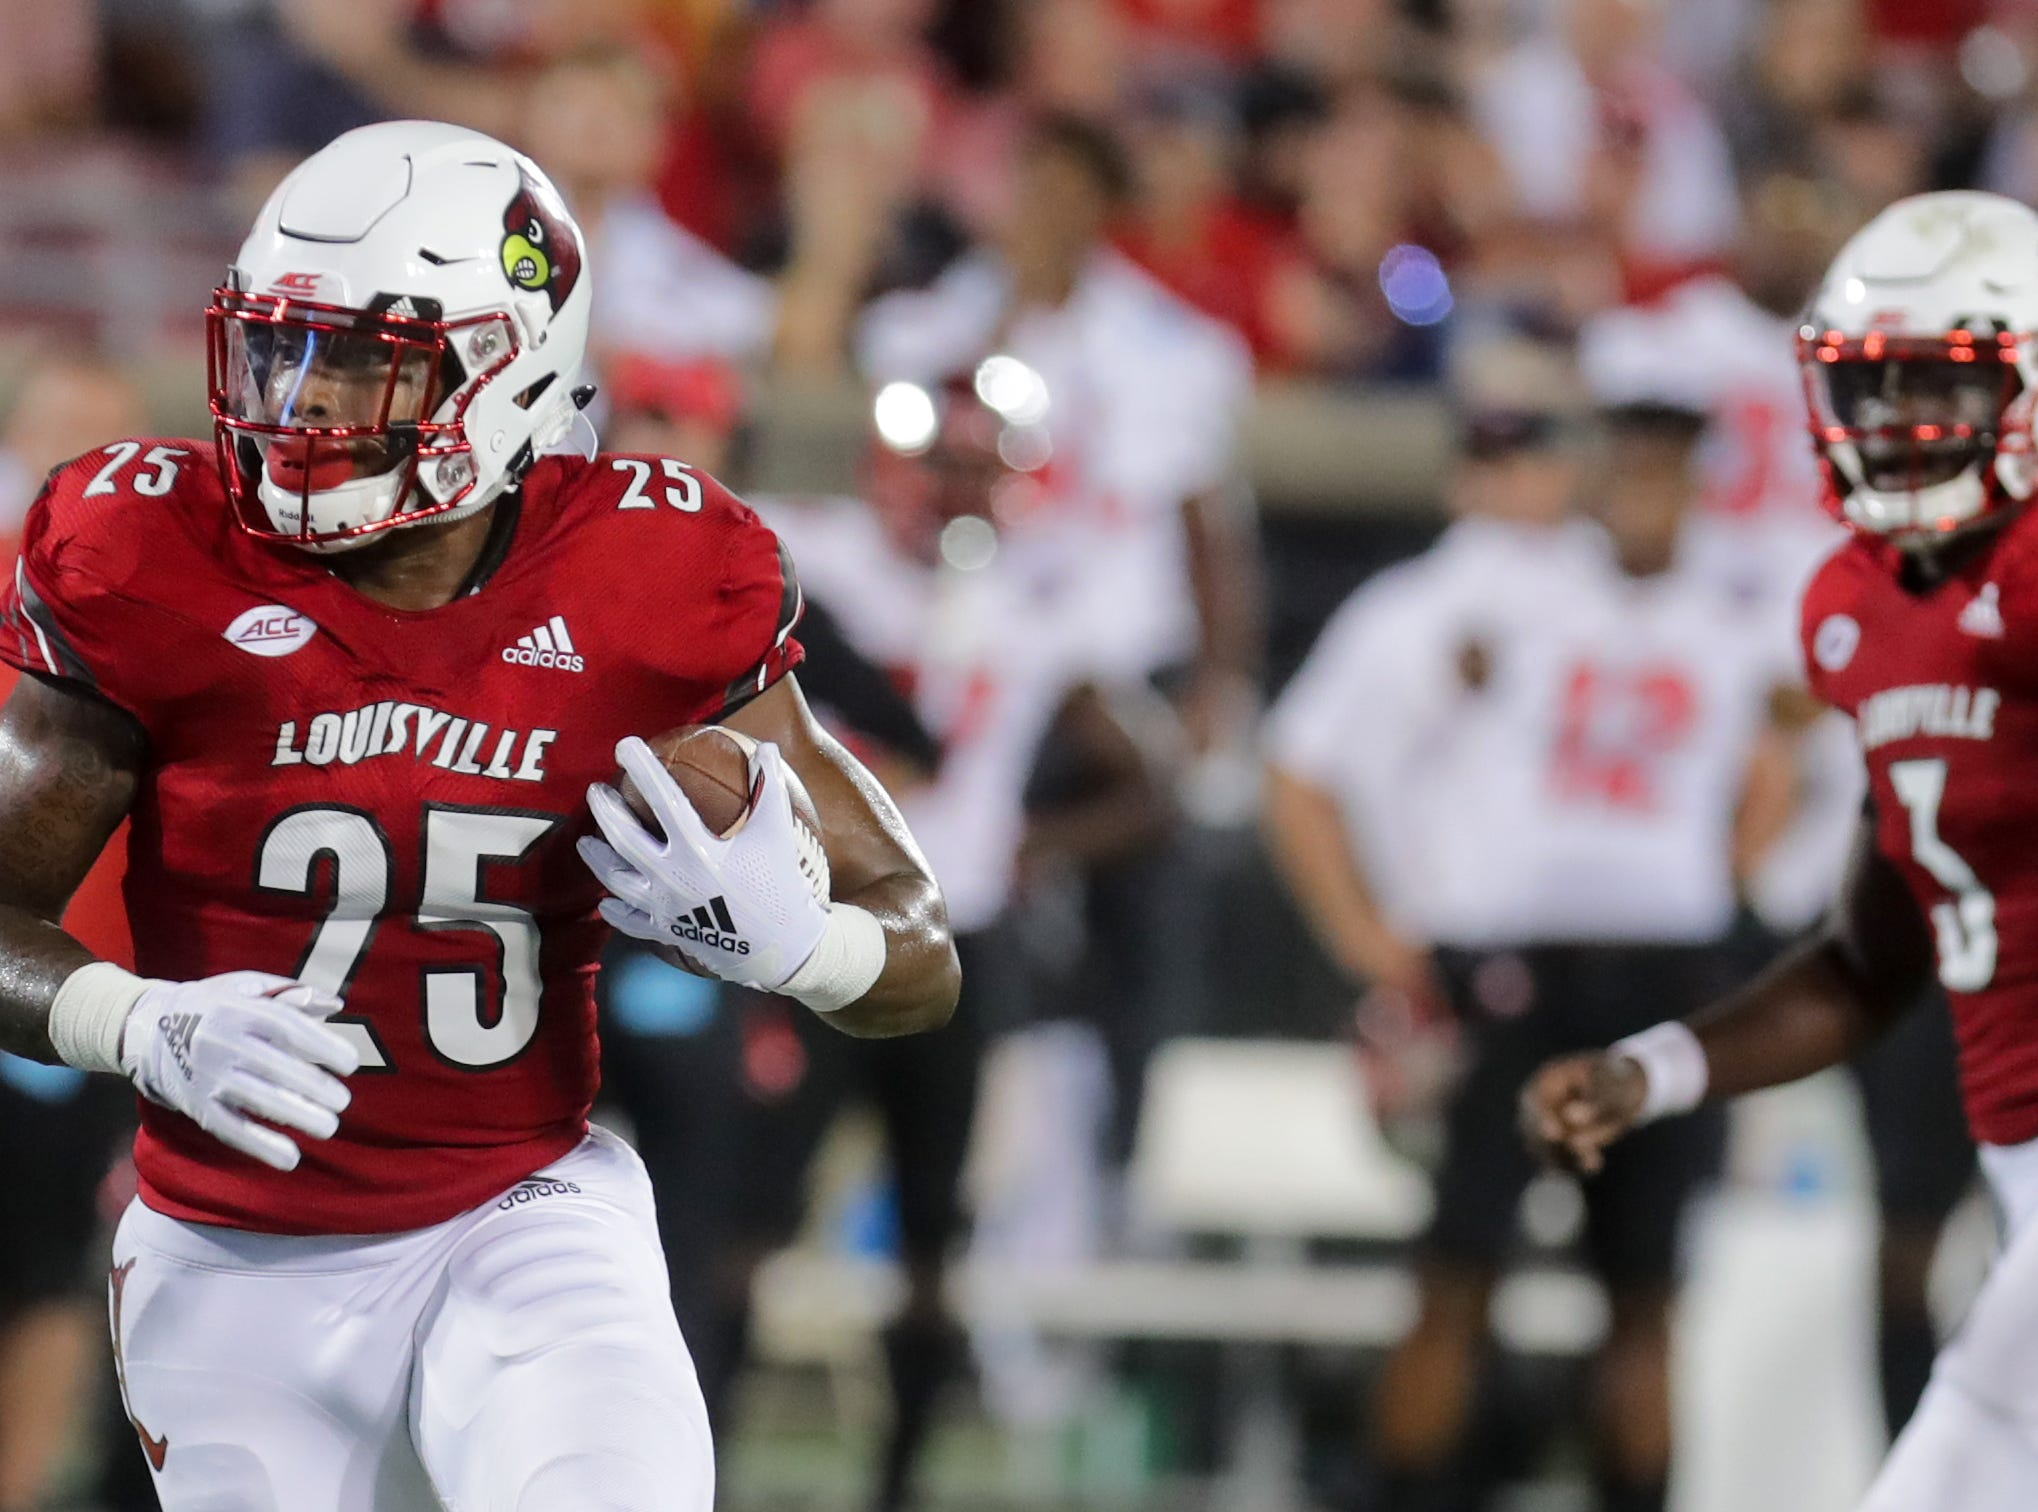 Louisville's Malik Cunningham, right, watches Dae Williams find some light and enough yards to get them just shy of the goal line.  